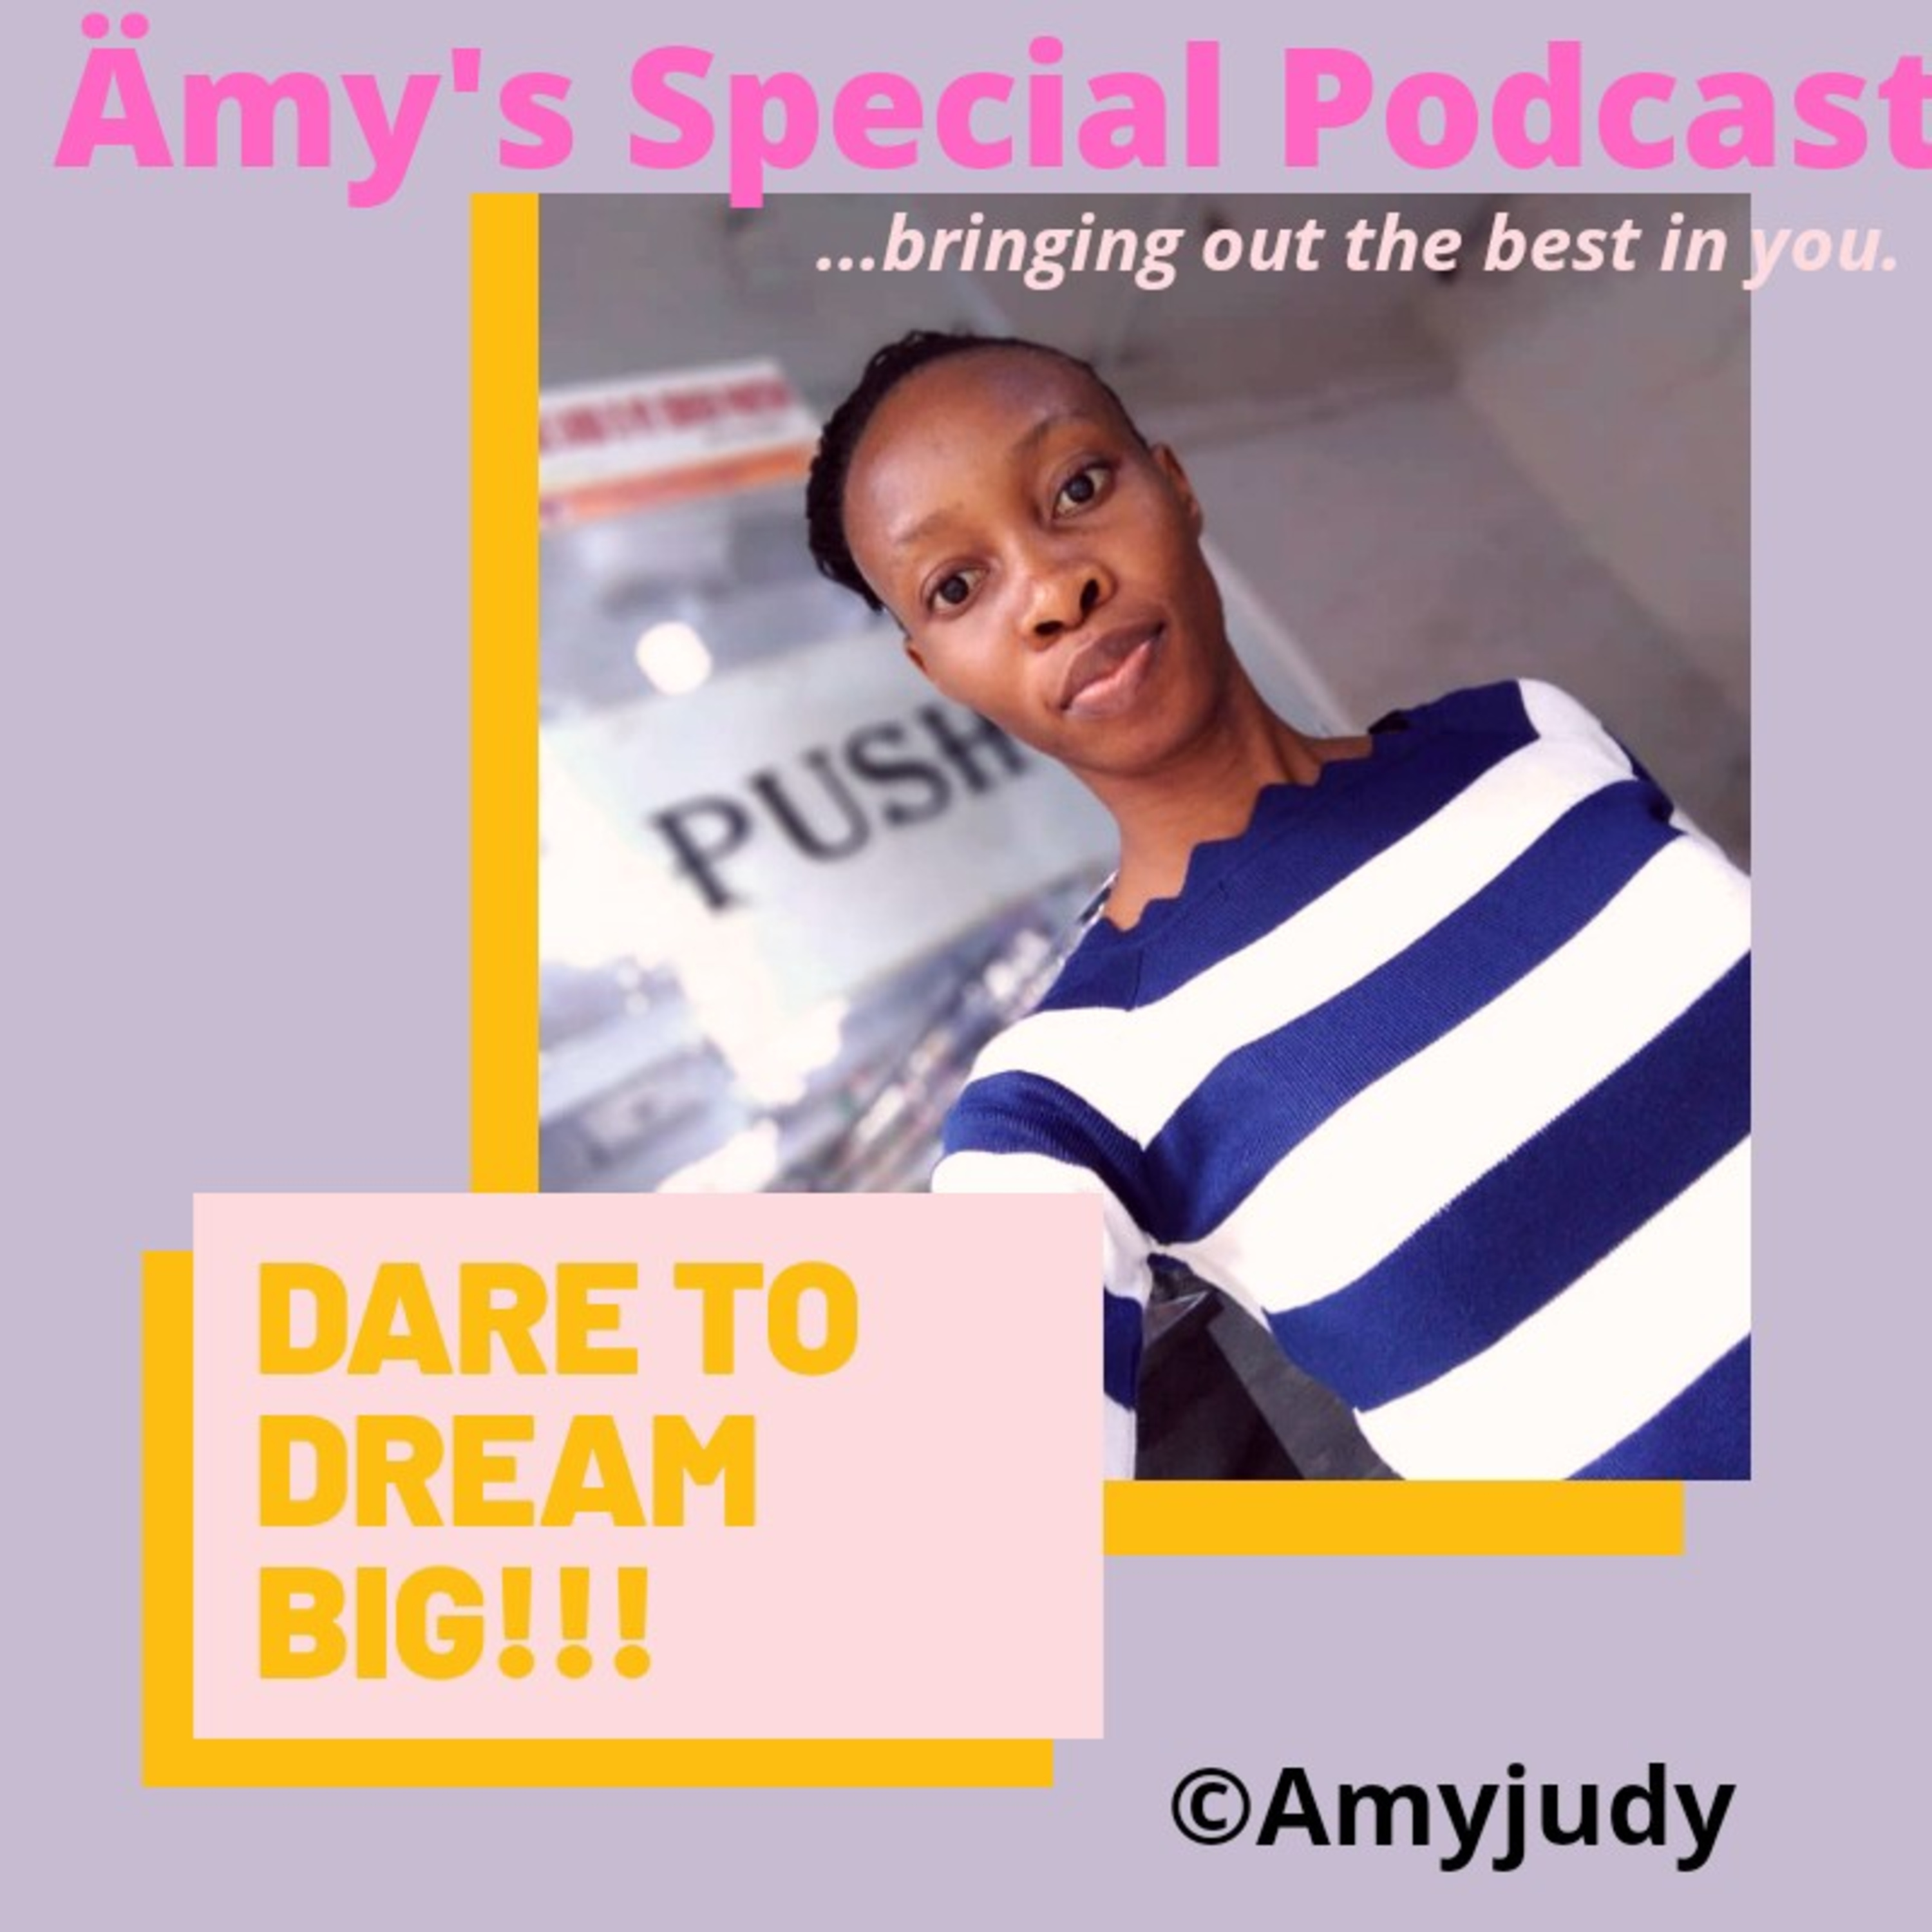 Amy's Special Podcast on Jamit